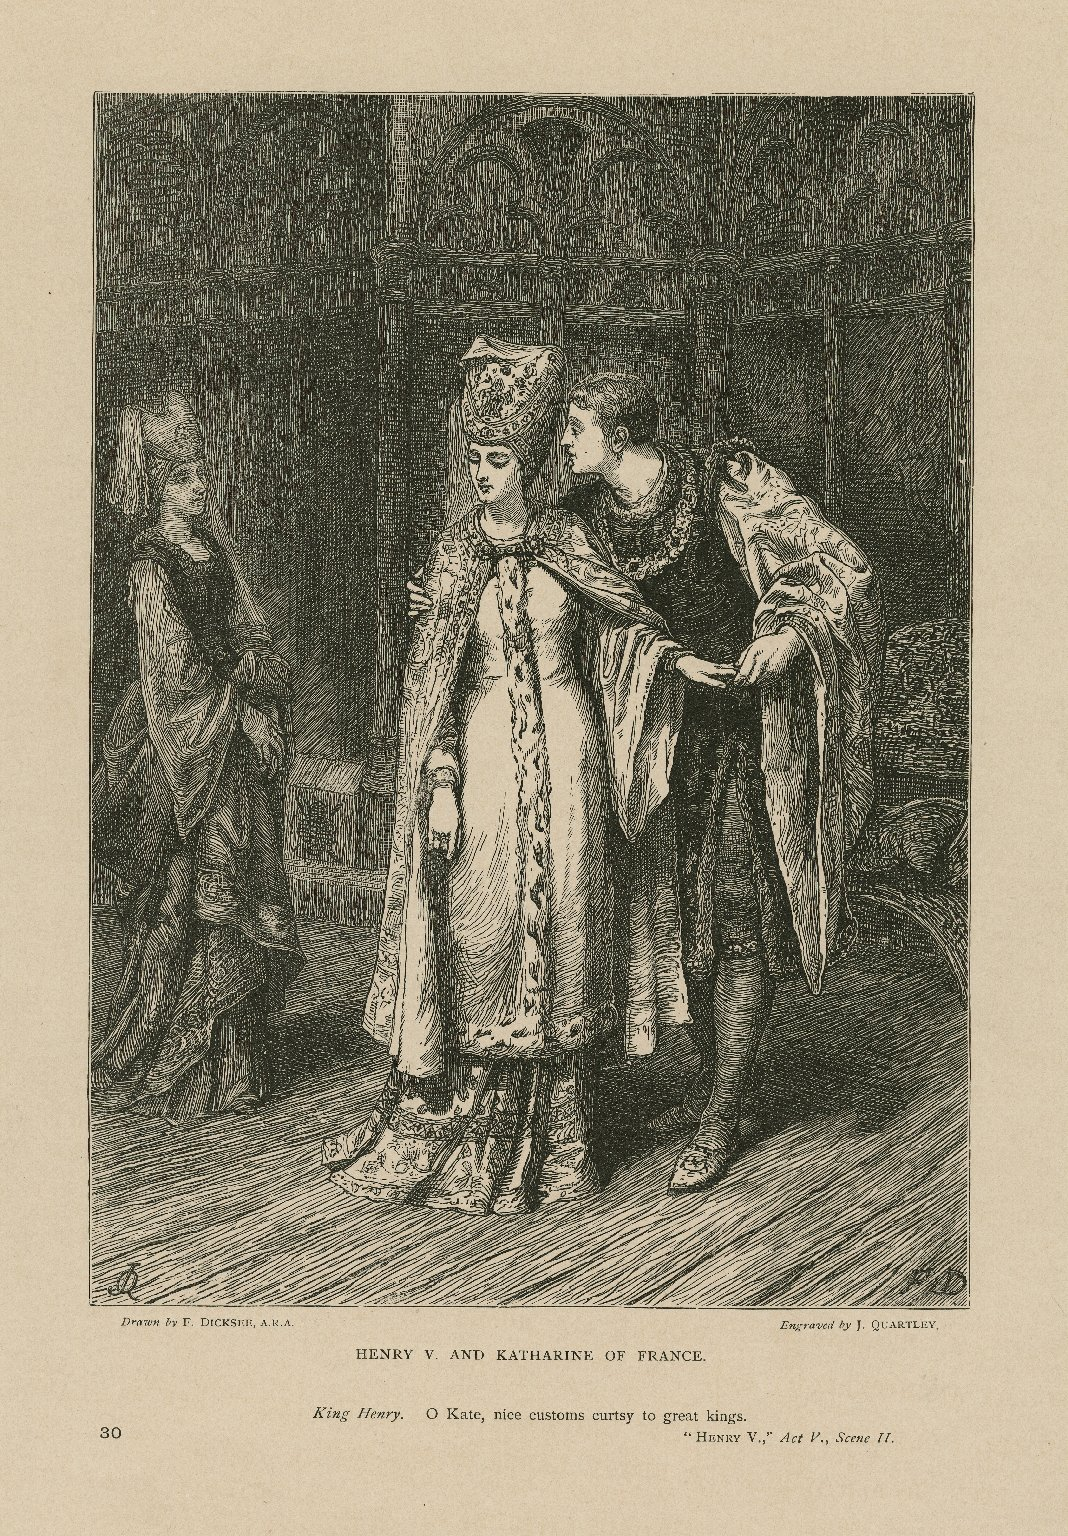 """Henry V and Katharine of France: """"O Kate, Nice customs curtsy to great kings"""": Henry V, act V, scene II [graphic] / drawn by F. Dicksee, A.R.A. ; engraved by J. Quartley."""